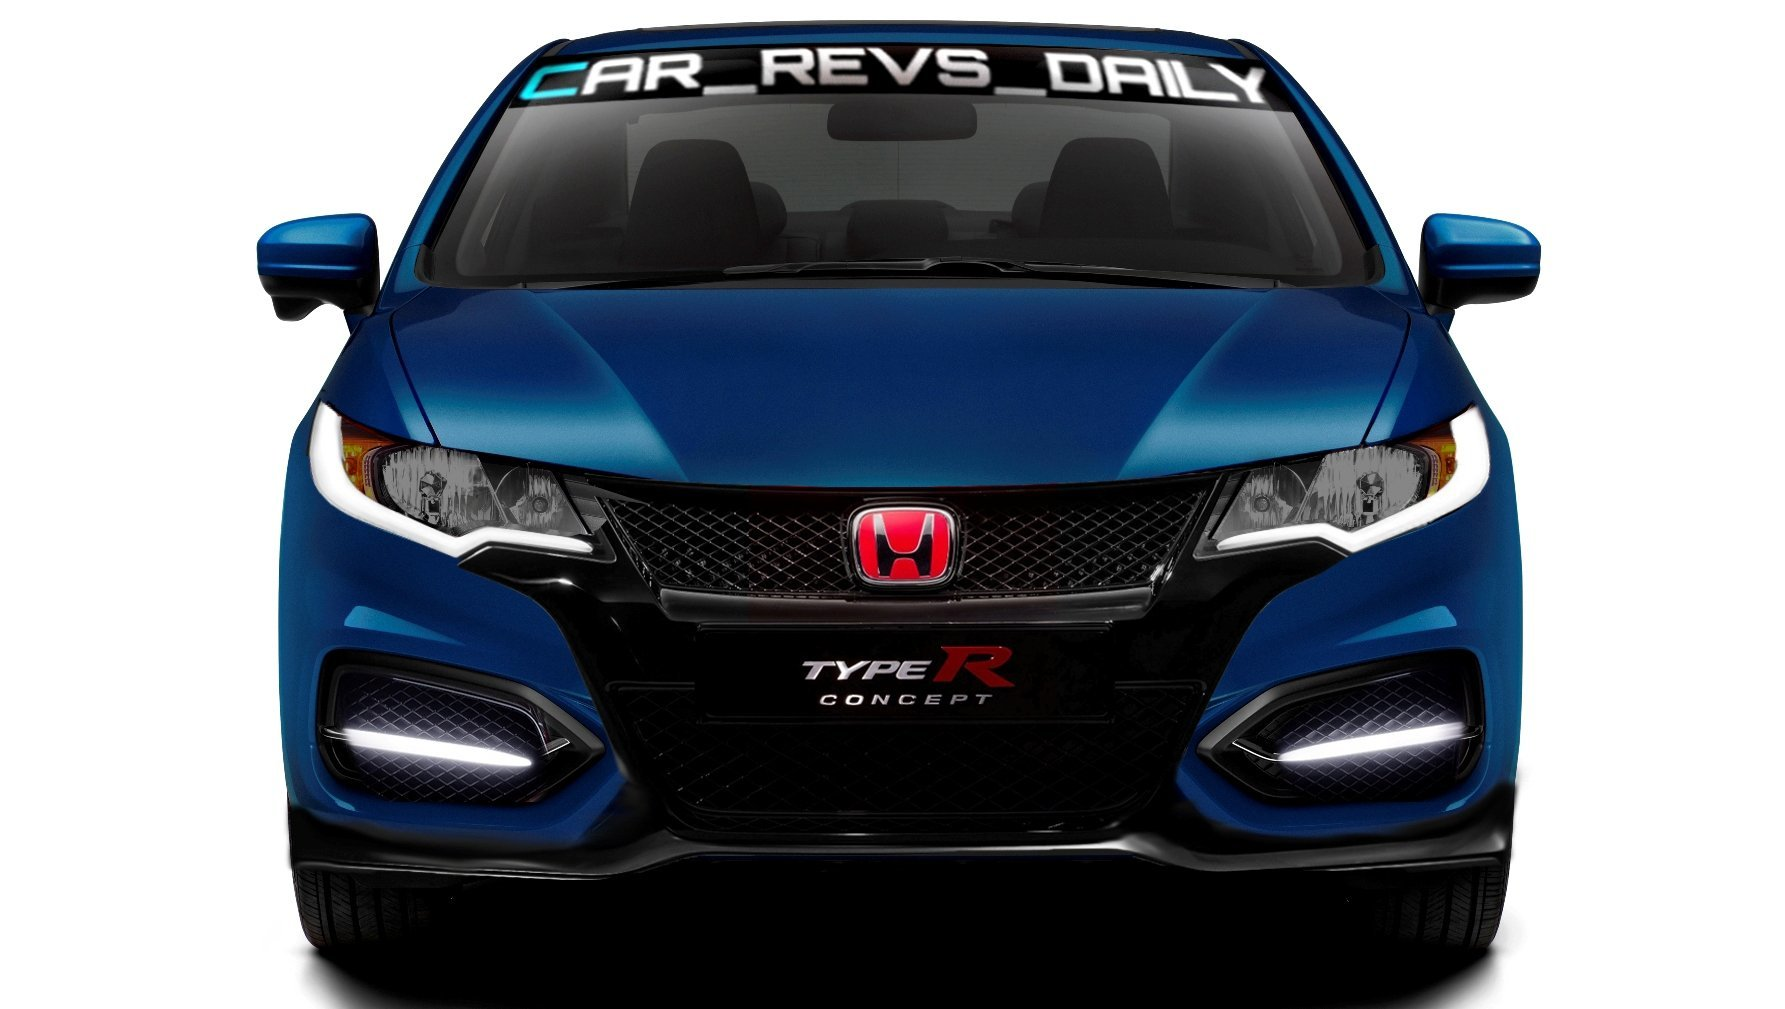 2016 honda civic type r coupe for sale auto usa reviews. Black Bedroom Furniture Sets. Home Design Ideas